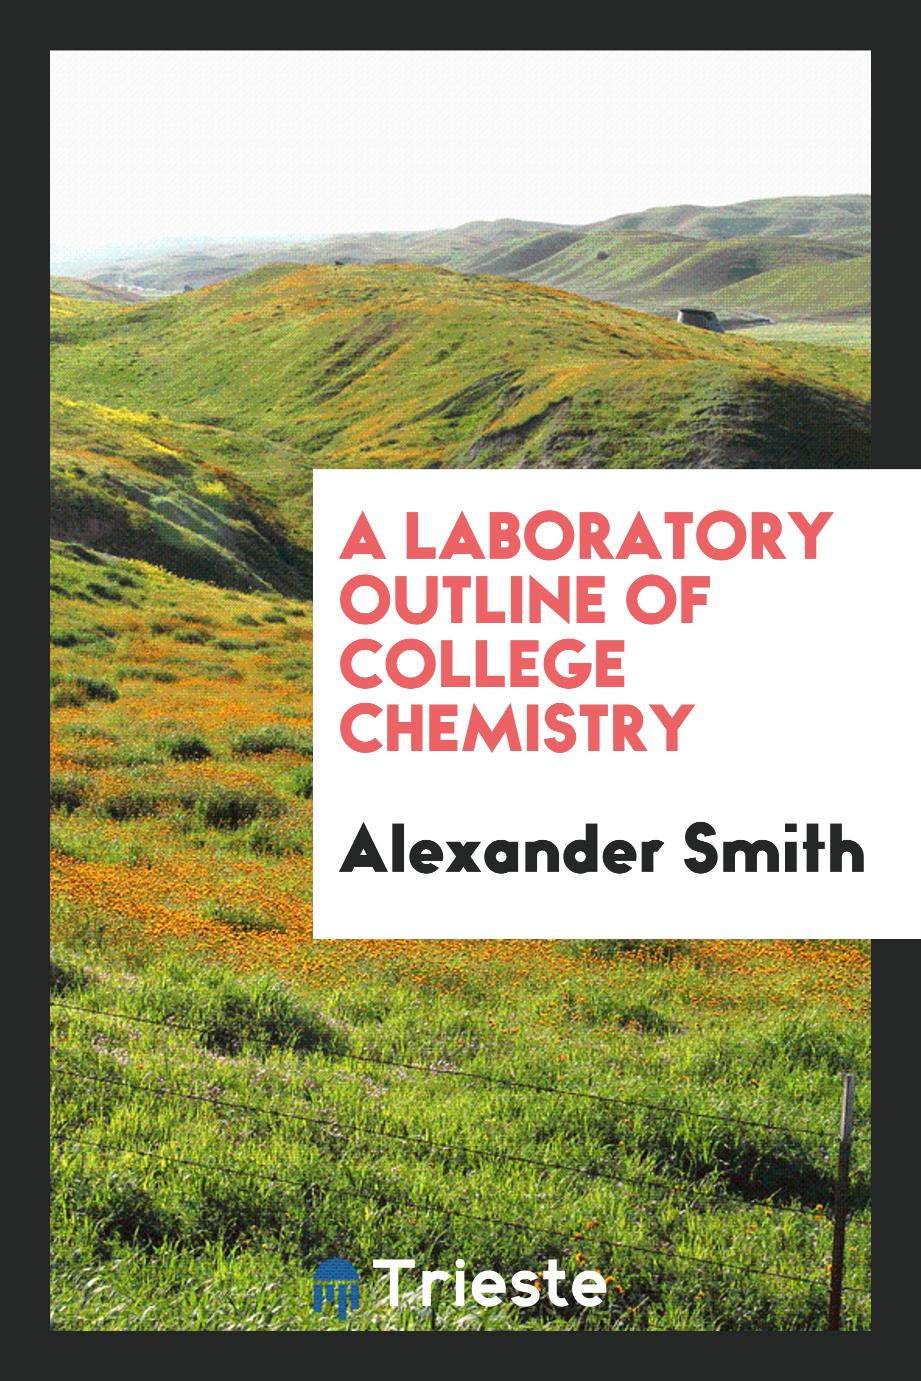 A Laboratory Outline of College Chemistry